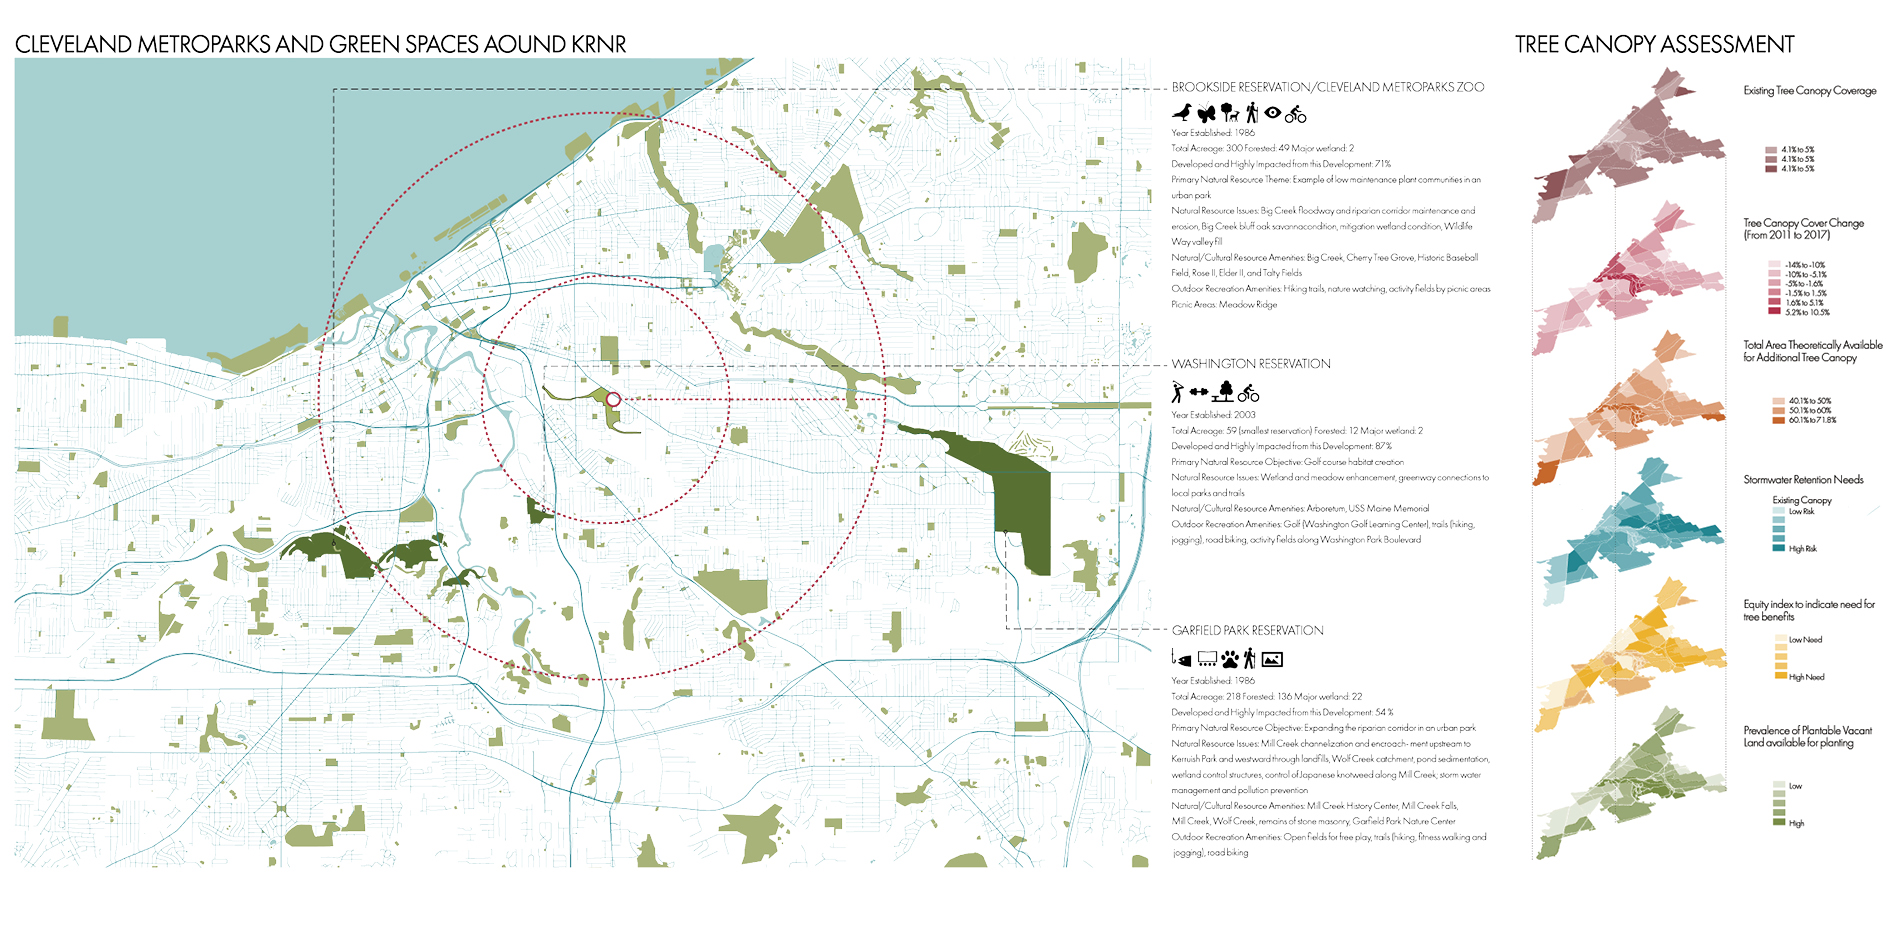 Cleveland Metroparks & Tree Canopy Assessment